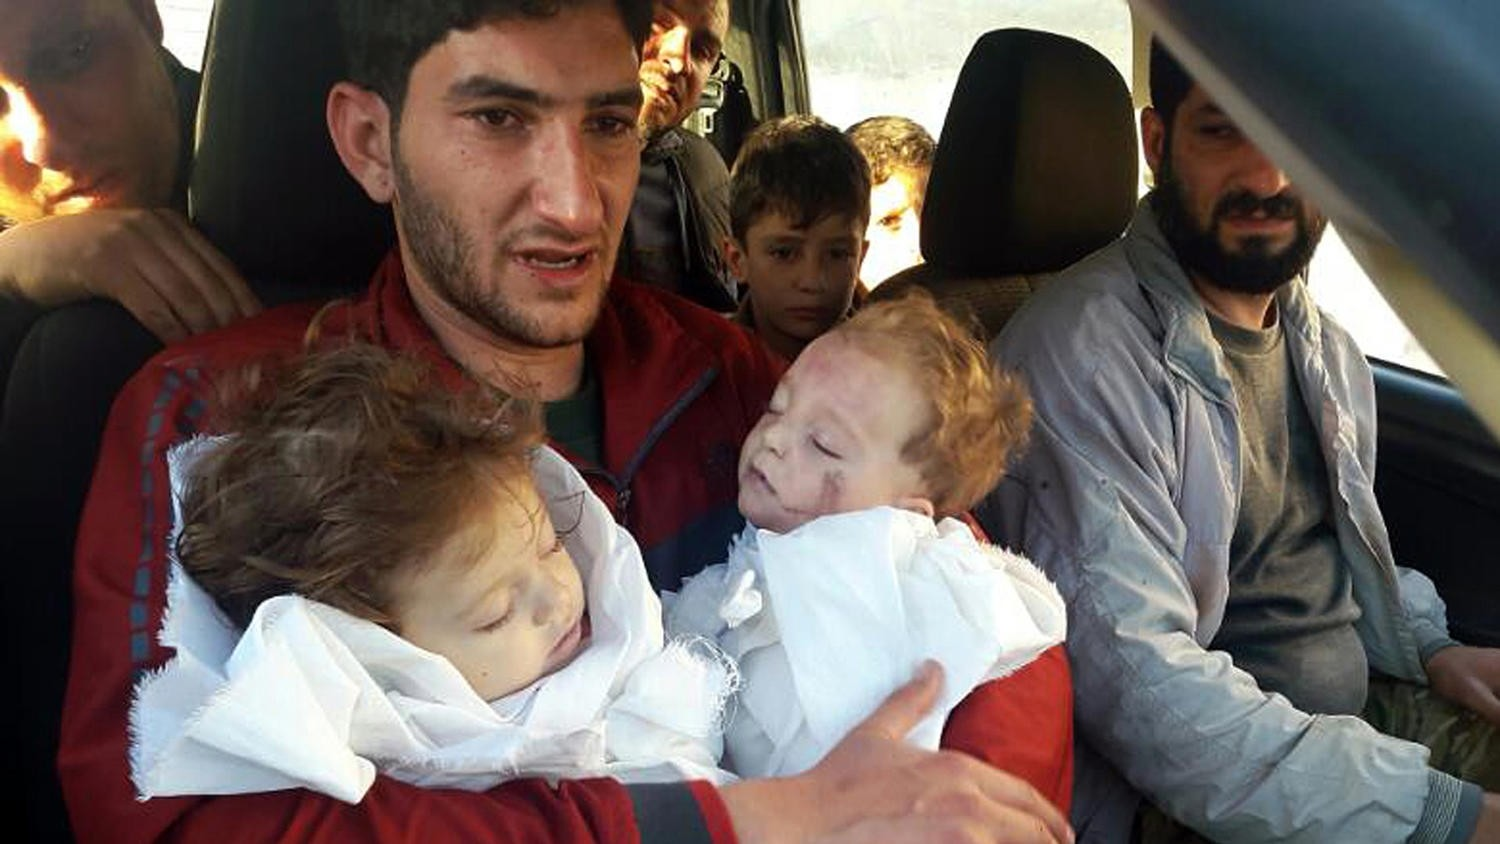 In this picture taken on Tuesday April 4, 2017, Abdul-Hamid Alyousef, 29, holds his twin babies who were killed during an Assad regime chemical weapons attack, in Khan Sheikhoun, Syria. (AP Photo)